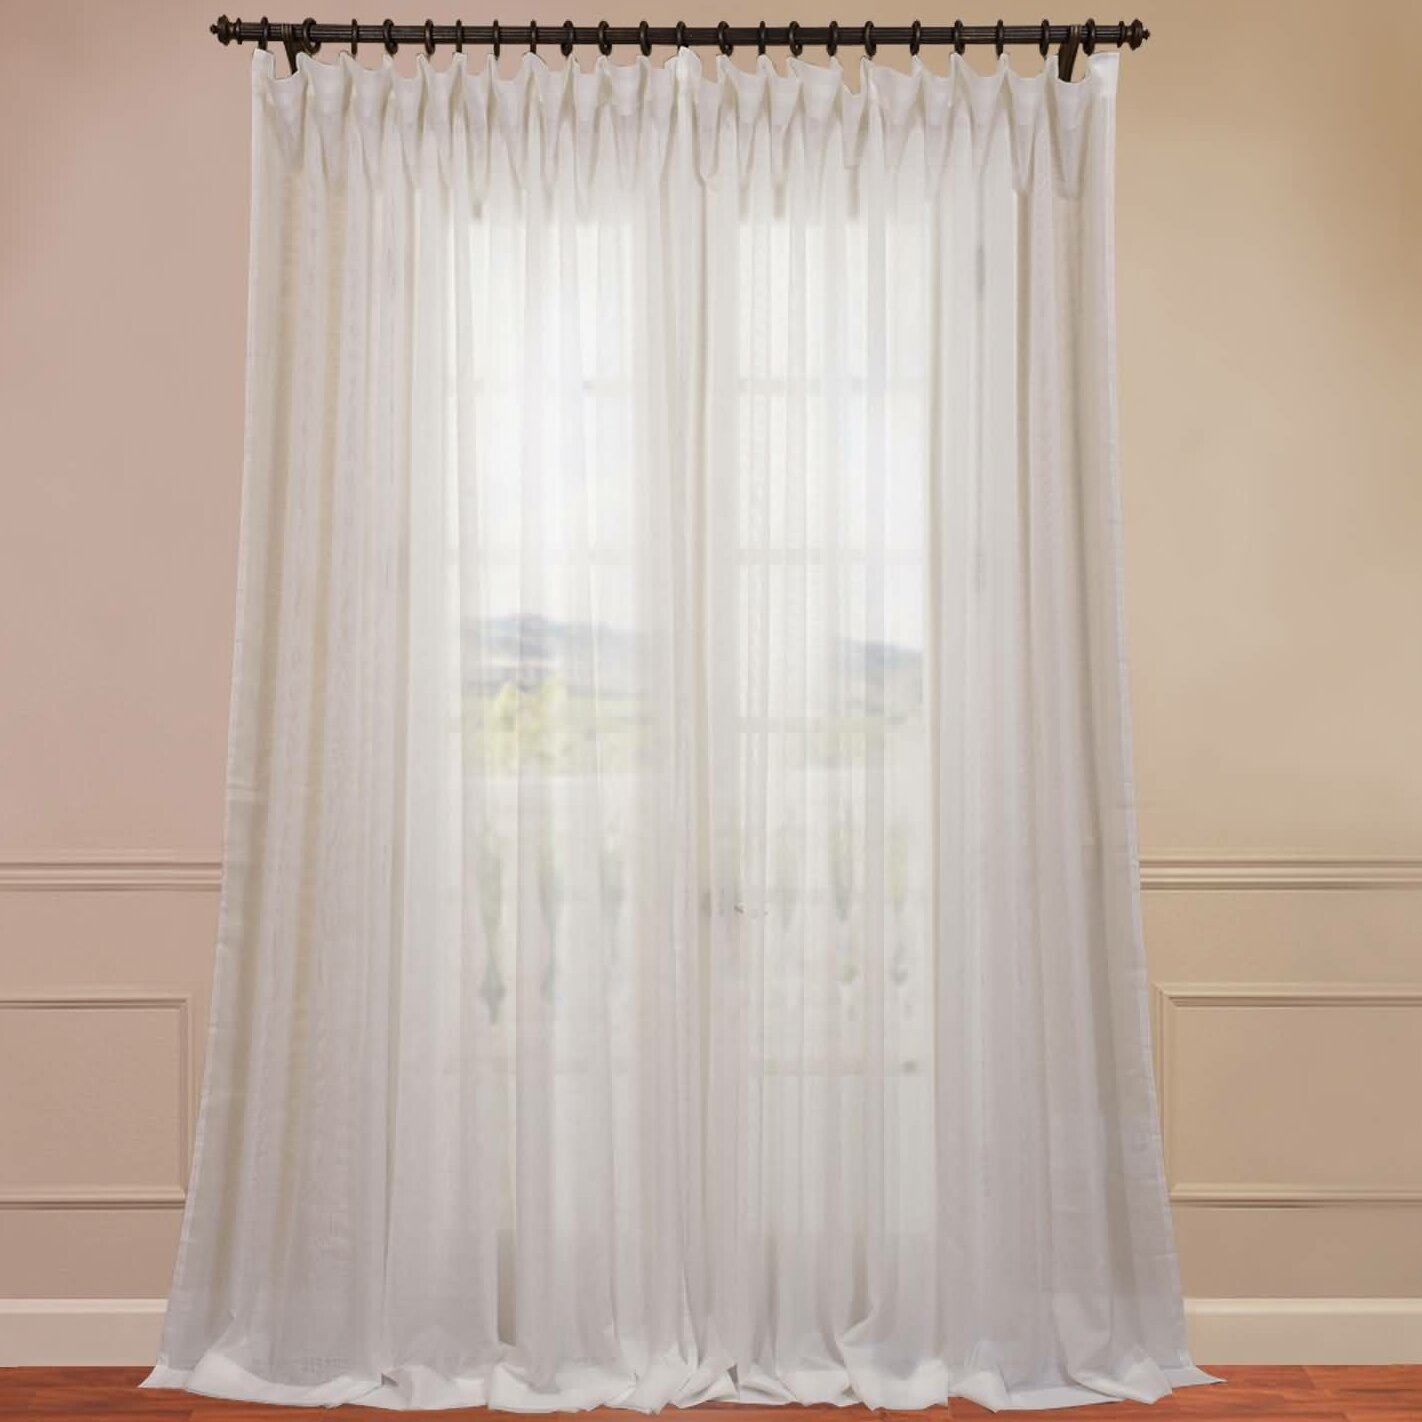 Curtains For Slider Doors White Sheer Curtain Panels